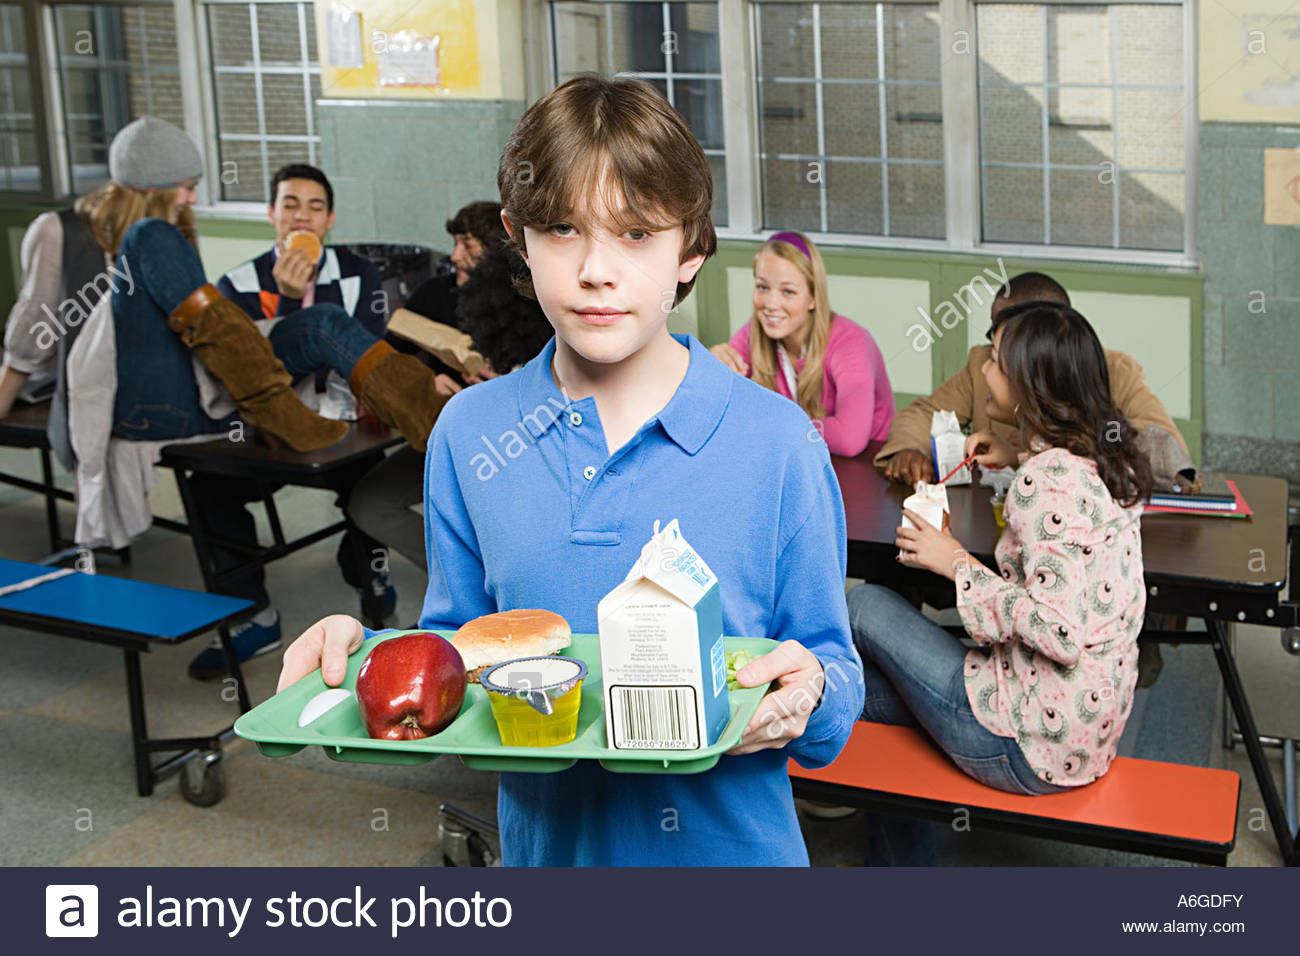 Boy in cafeteria - Stock Image